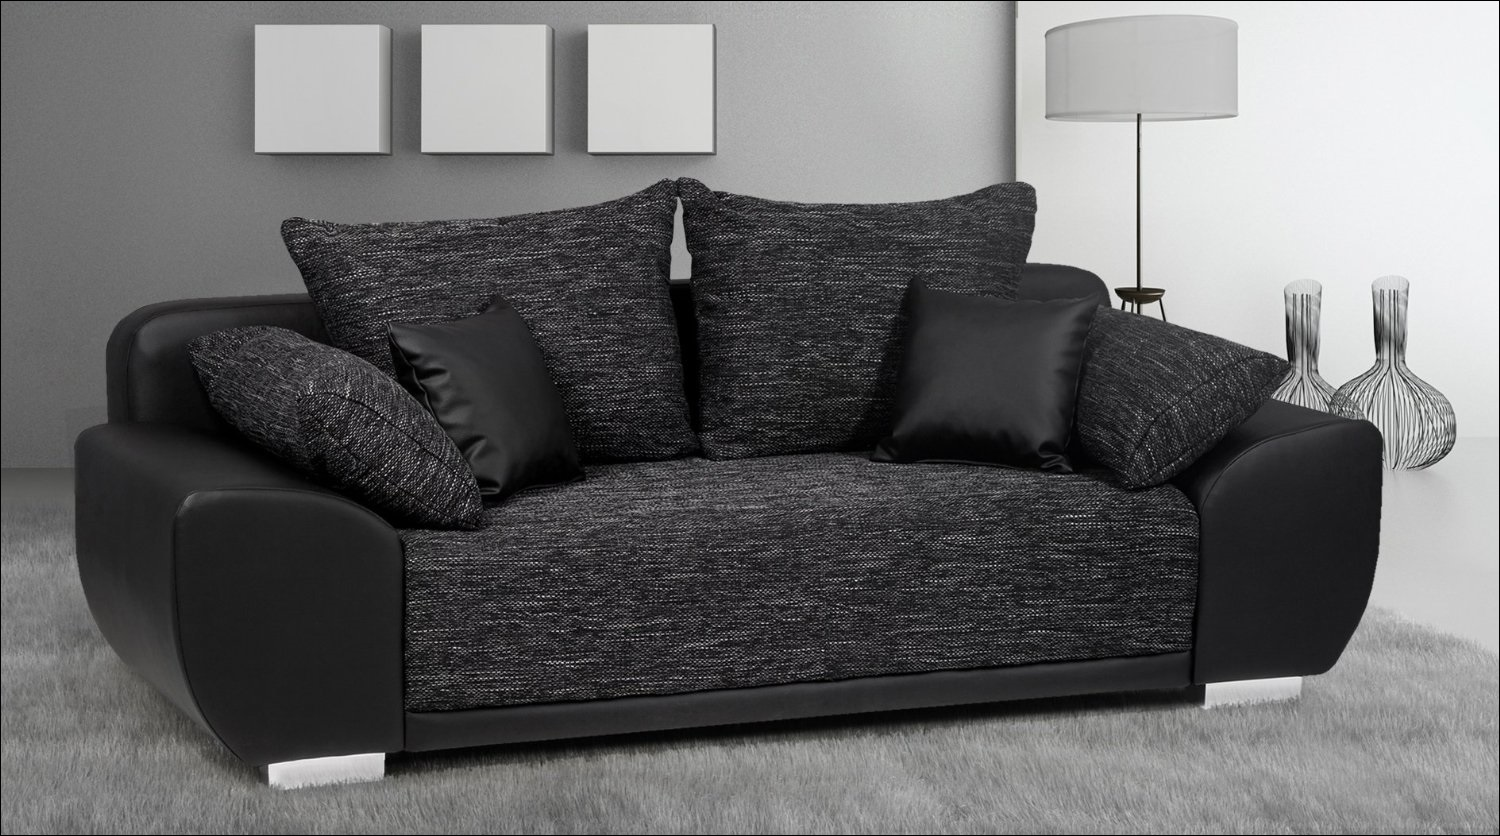 bettsofa test testsieger preisvergleich. Black Bedroom Furniture Sets. Home Design Ideas